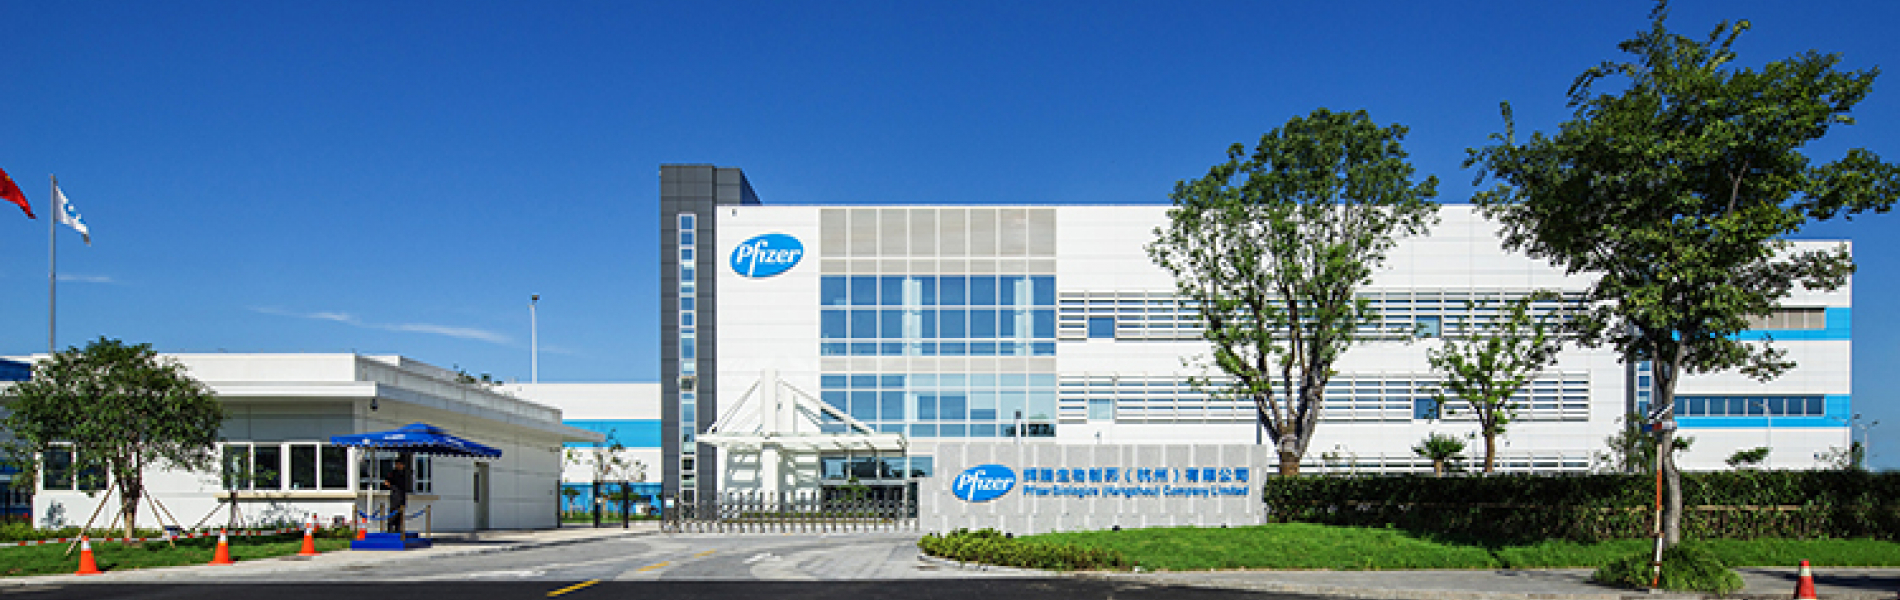 Pfizer Global Biotechnology Center - ISPE Pharmaceutical Engineering